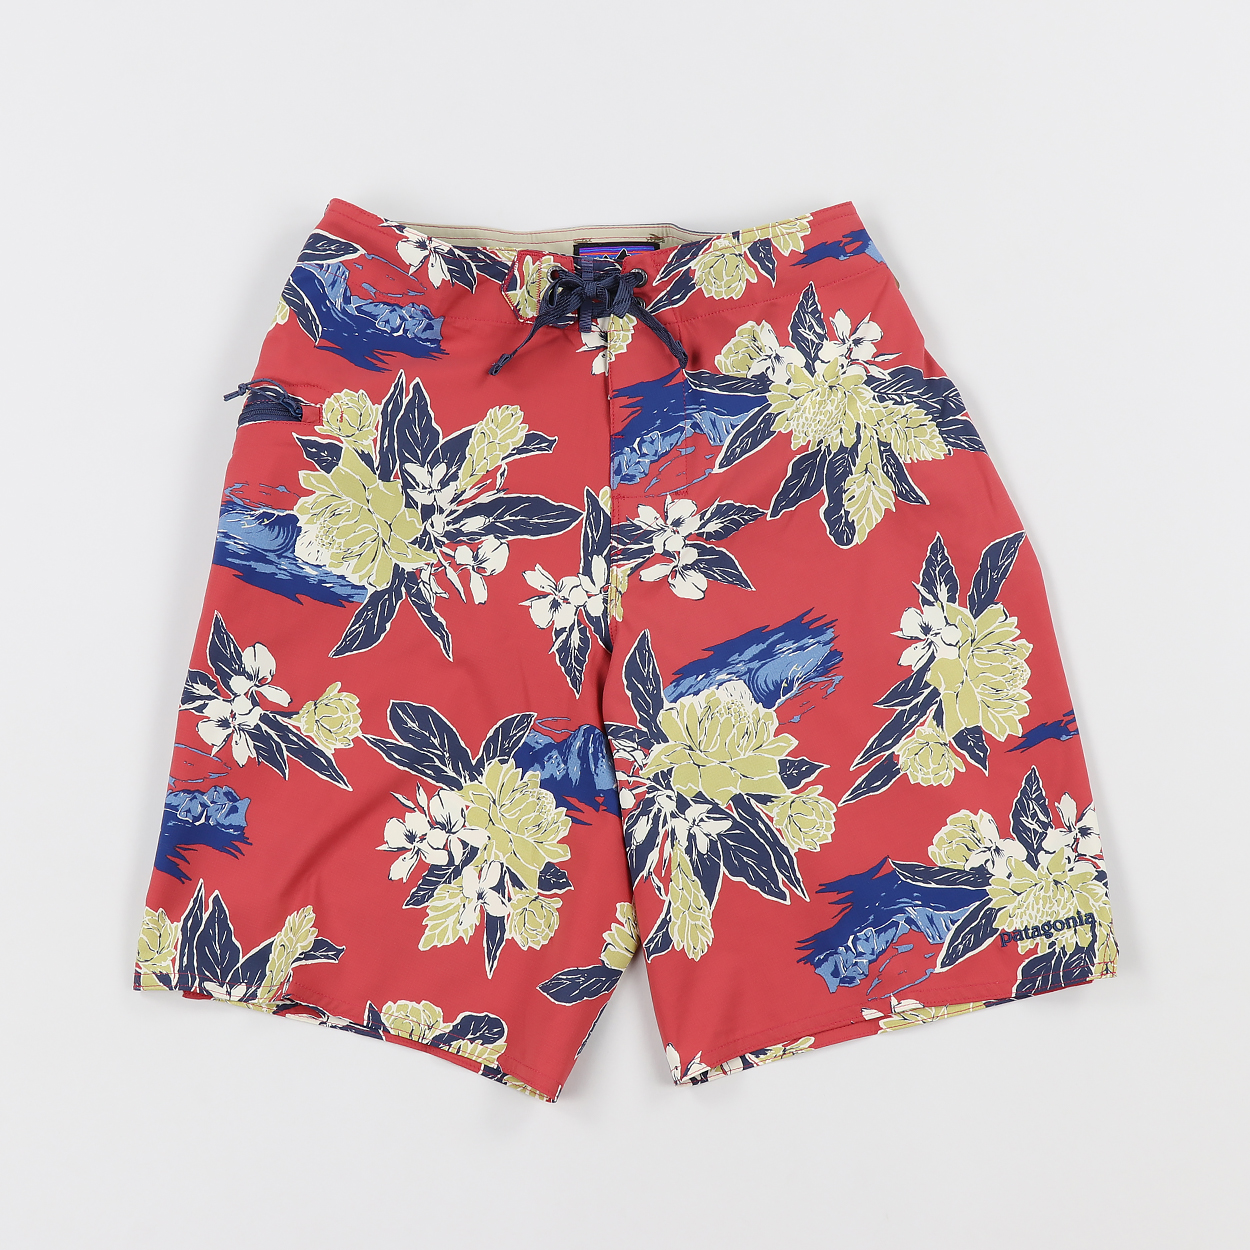 fc3256b071 Patagonia Stretch Planing Boardshorts 20 Cleanest Line Static Red £52.50